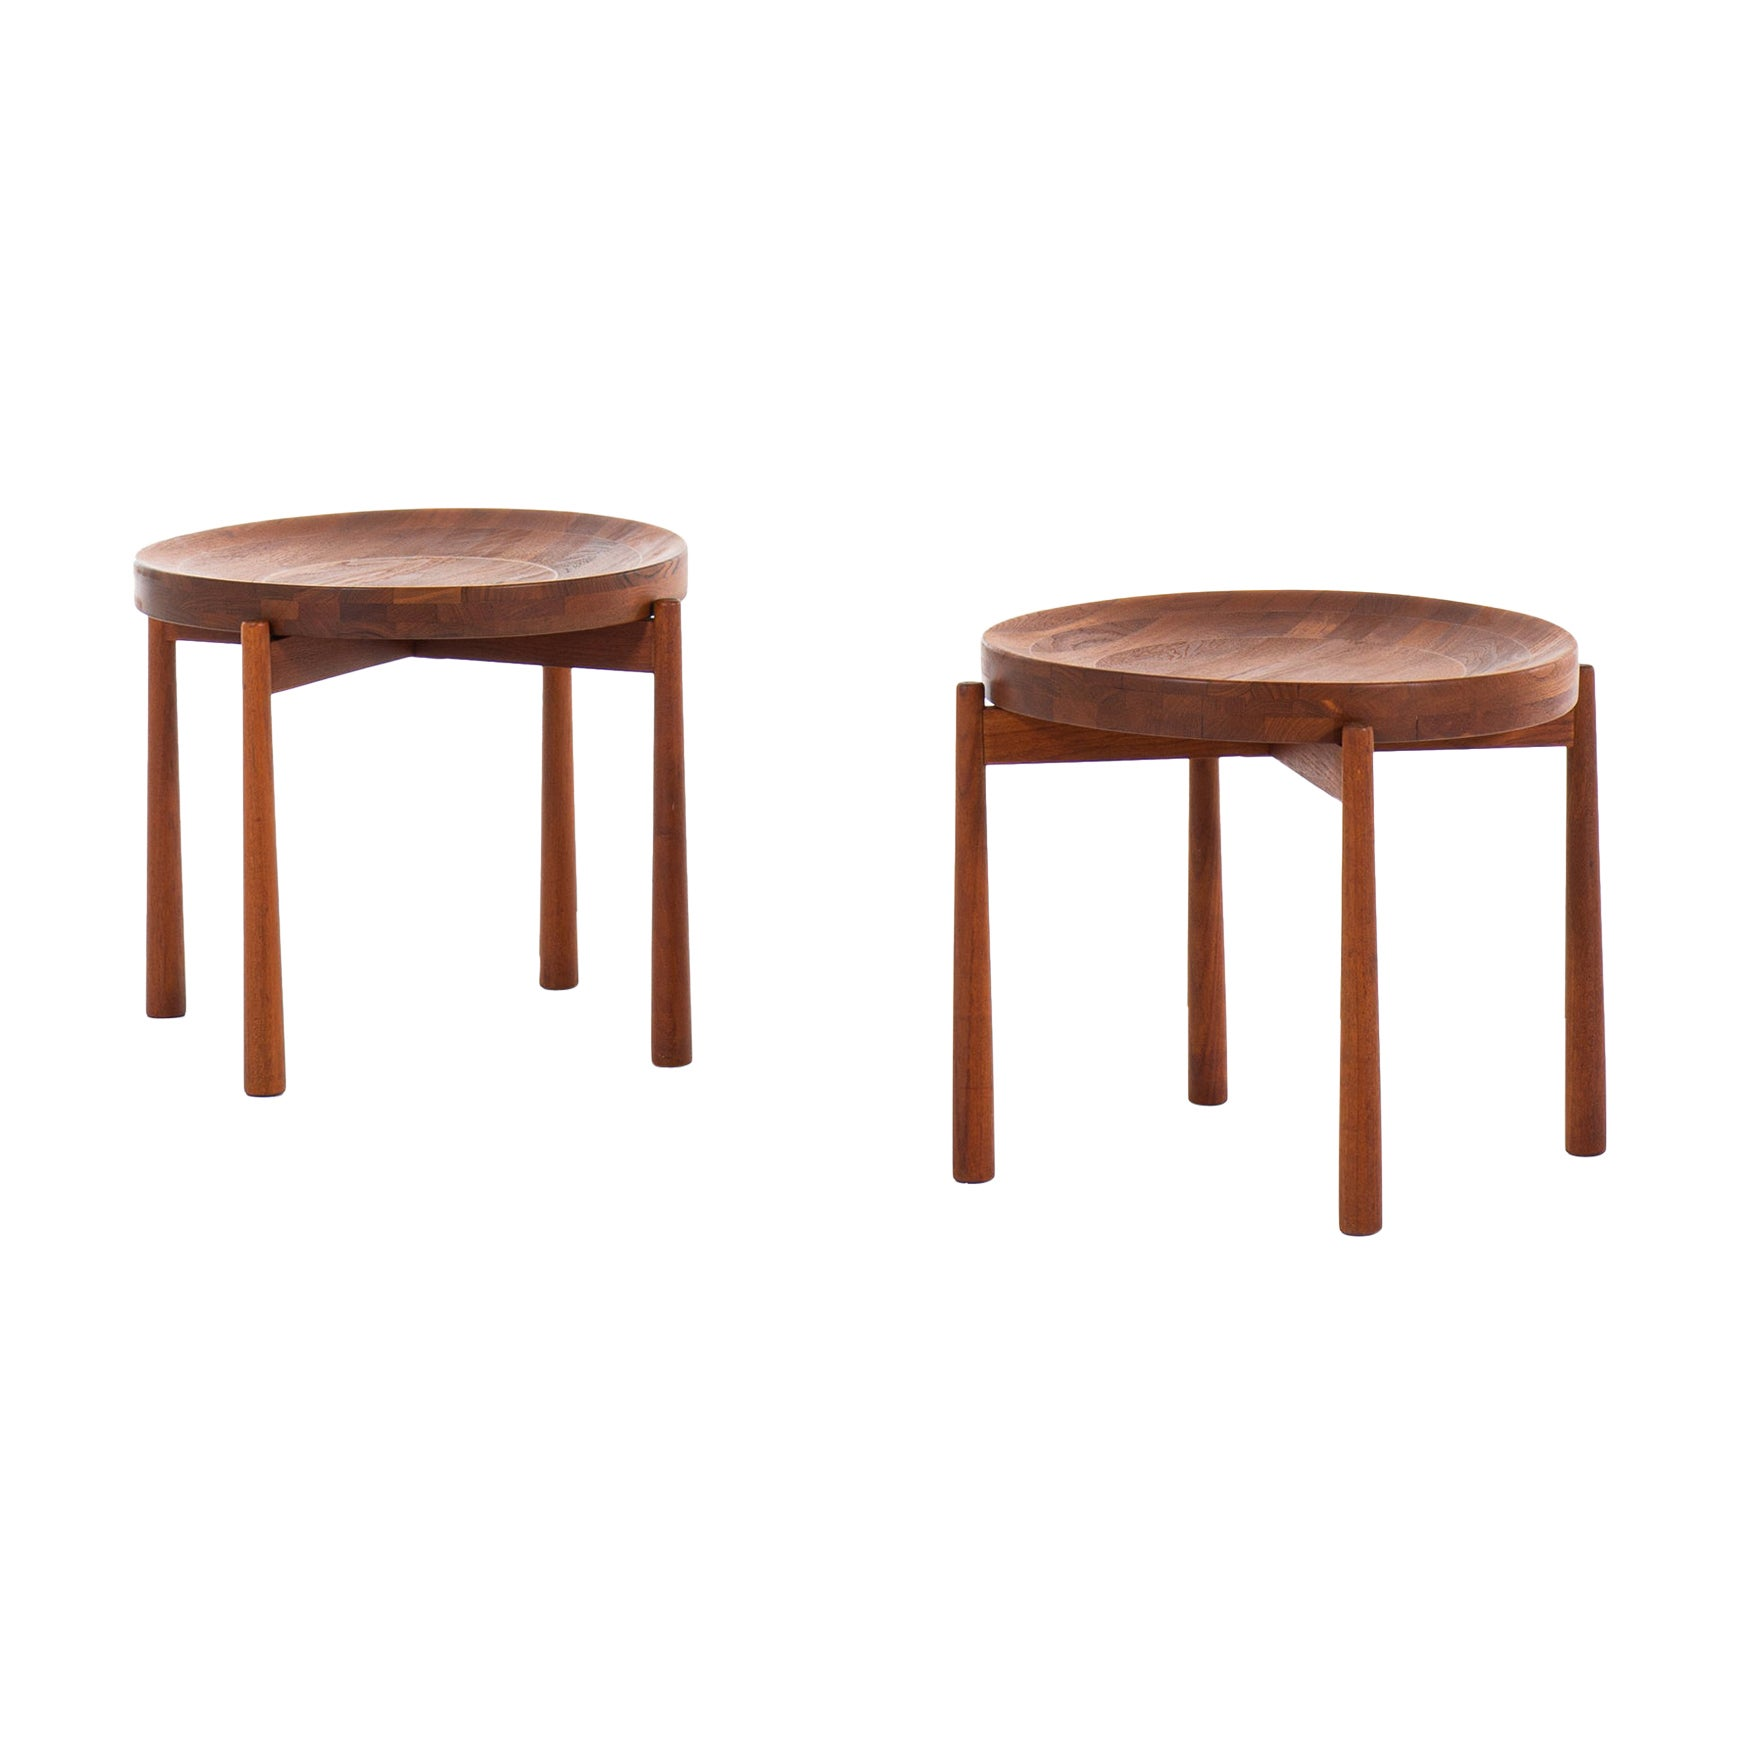 Jens Harald Quistgaard Attributed Side Tables Produced by Nissen in Denmark